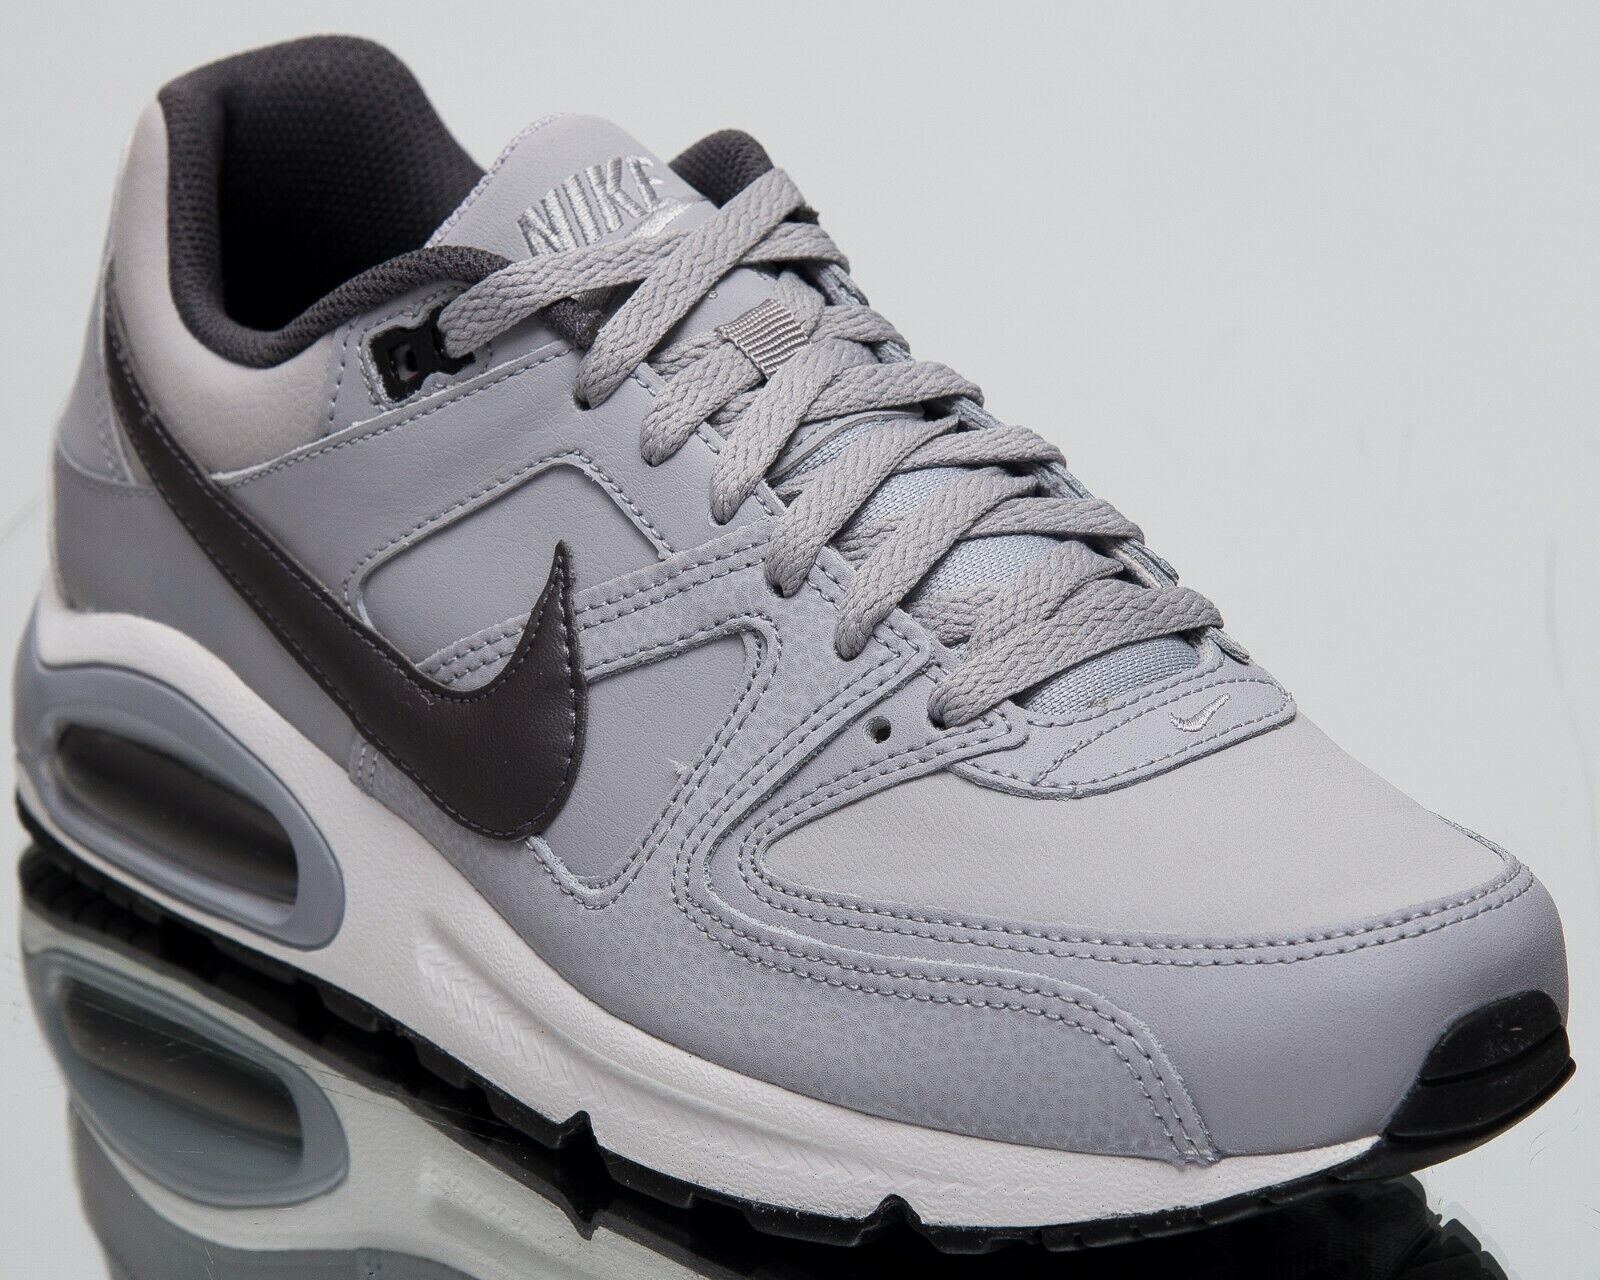 Nike Air Max Command Leather New Men's Lifestyle shoes Wolf Grey 2019 749760-012